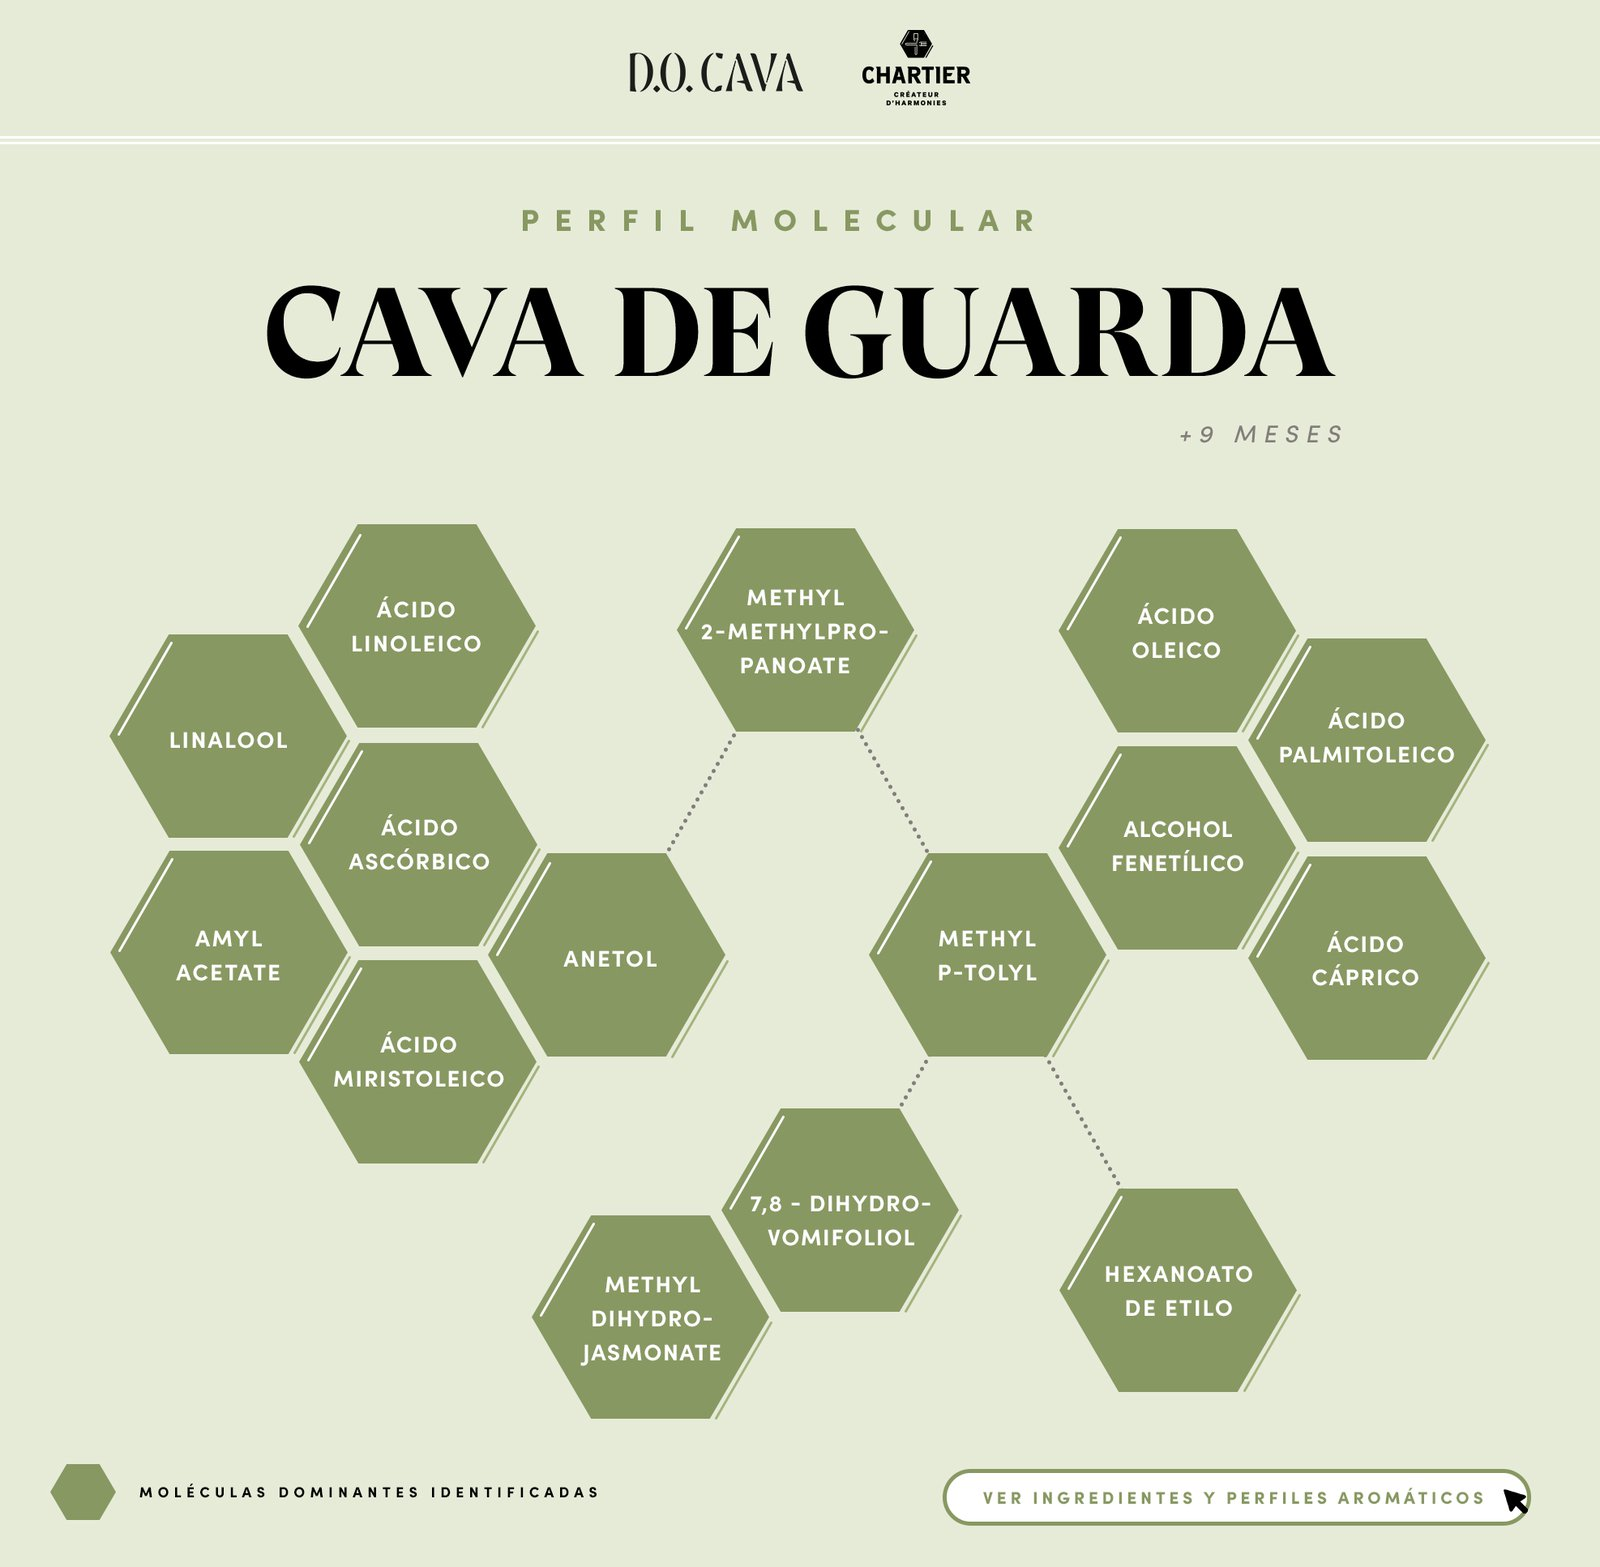 CAST-Summary-Cava-de-Guarda.jpg